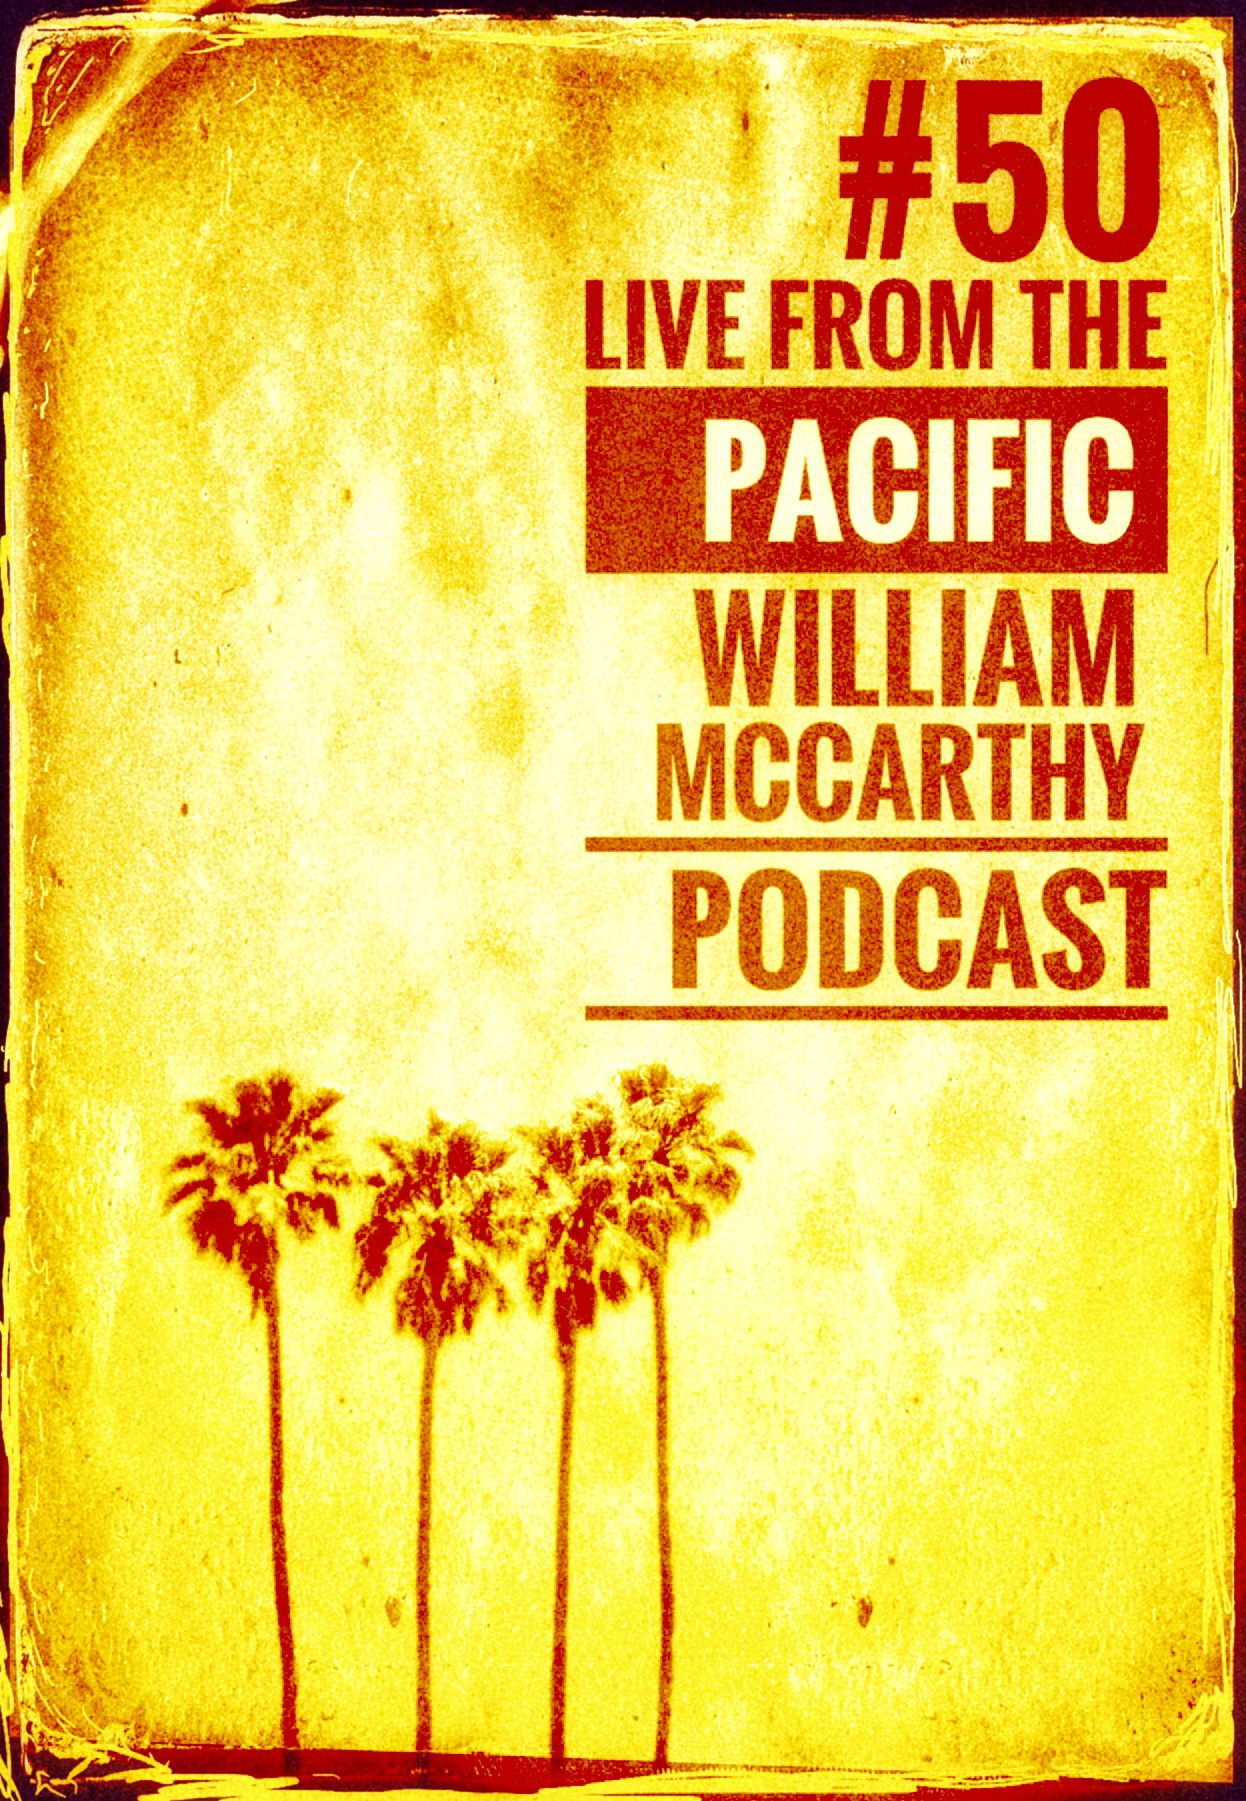 Celebrating my 50th Podcast episode we explore the Pacific ocean, Island of the blue dolphins, The Spanish missions of California, Rock 'n' roll and Punk, beatniks, west coast history and my upcoming Mexico journey